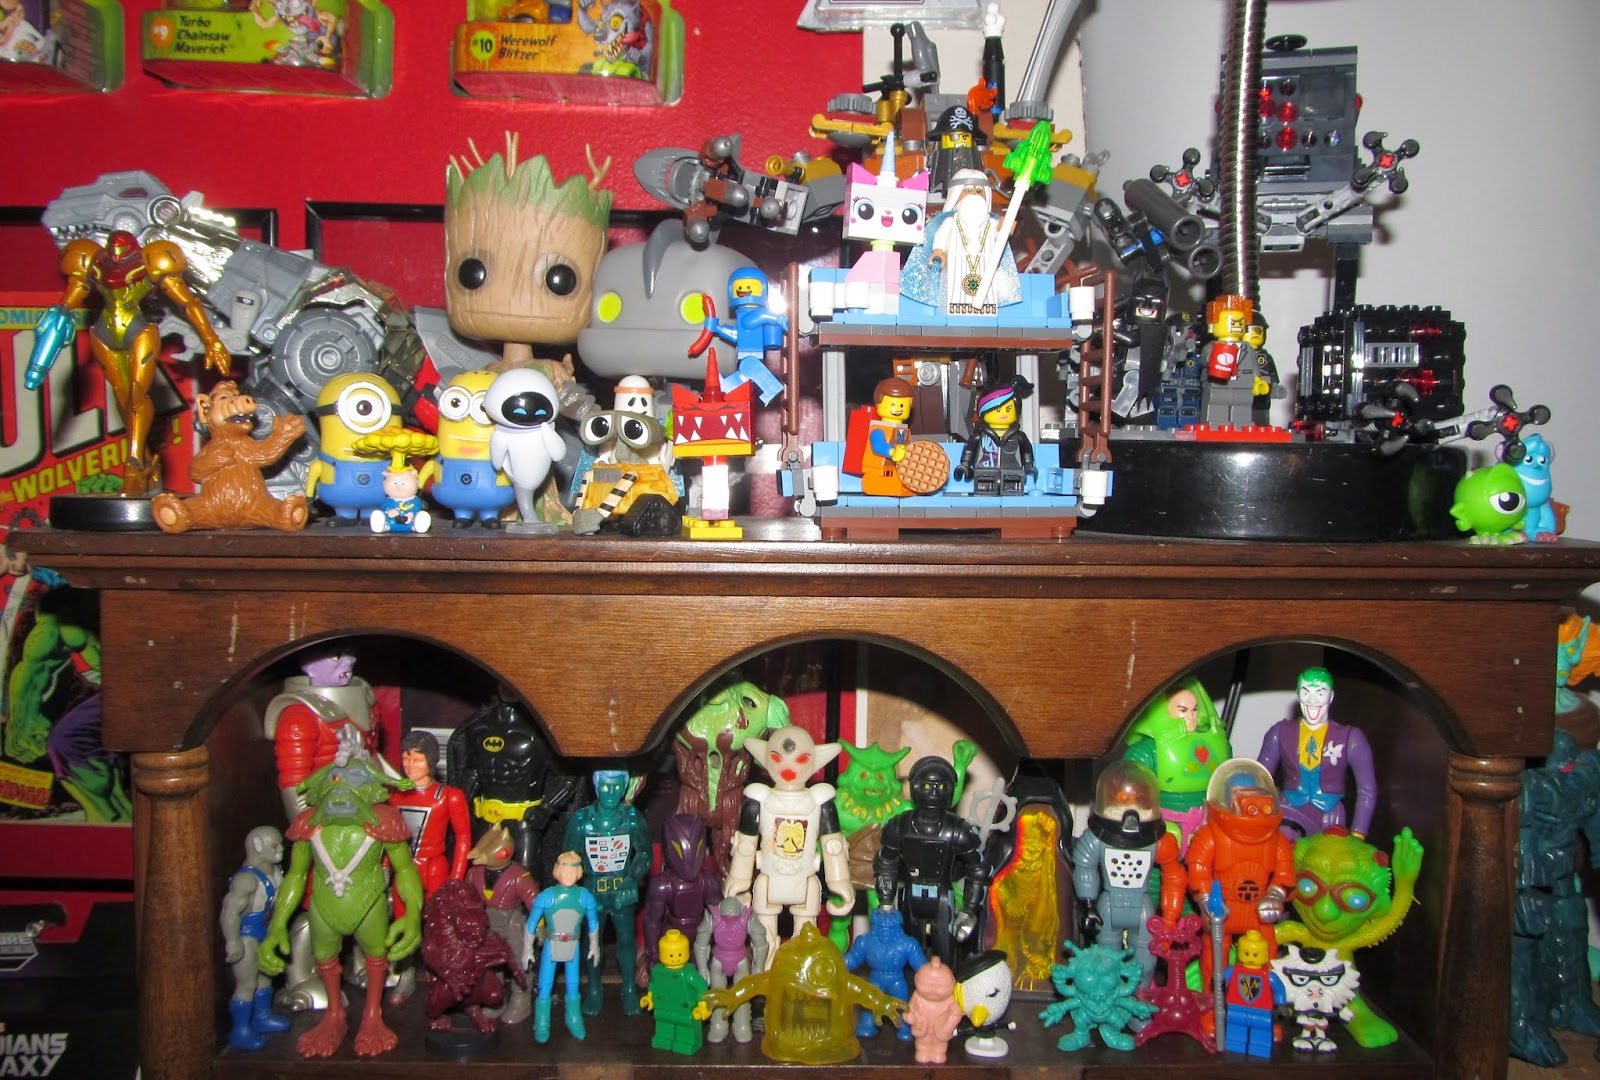 80 Toy Action Figure Shelves - IMG_3245_Beautiful 80 Toy Action Figure Shelves - IMG_3245  Pic_431425.JPG